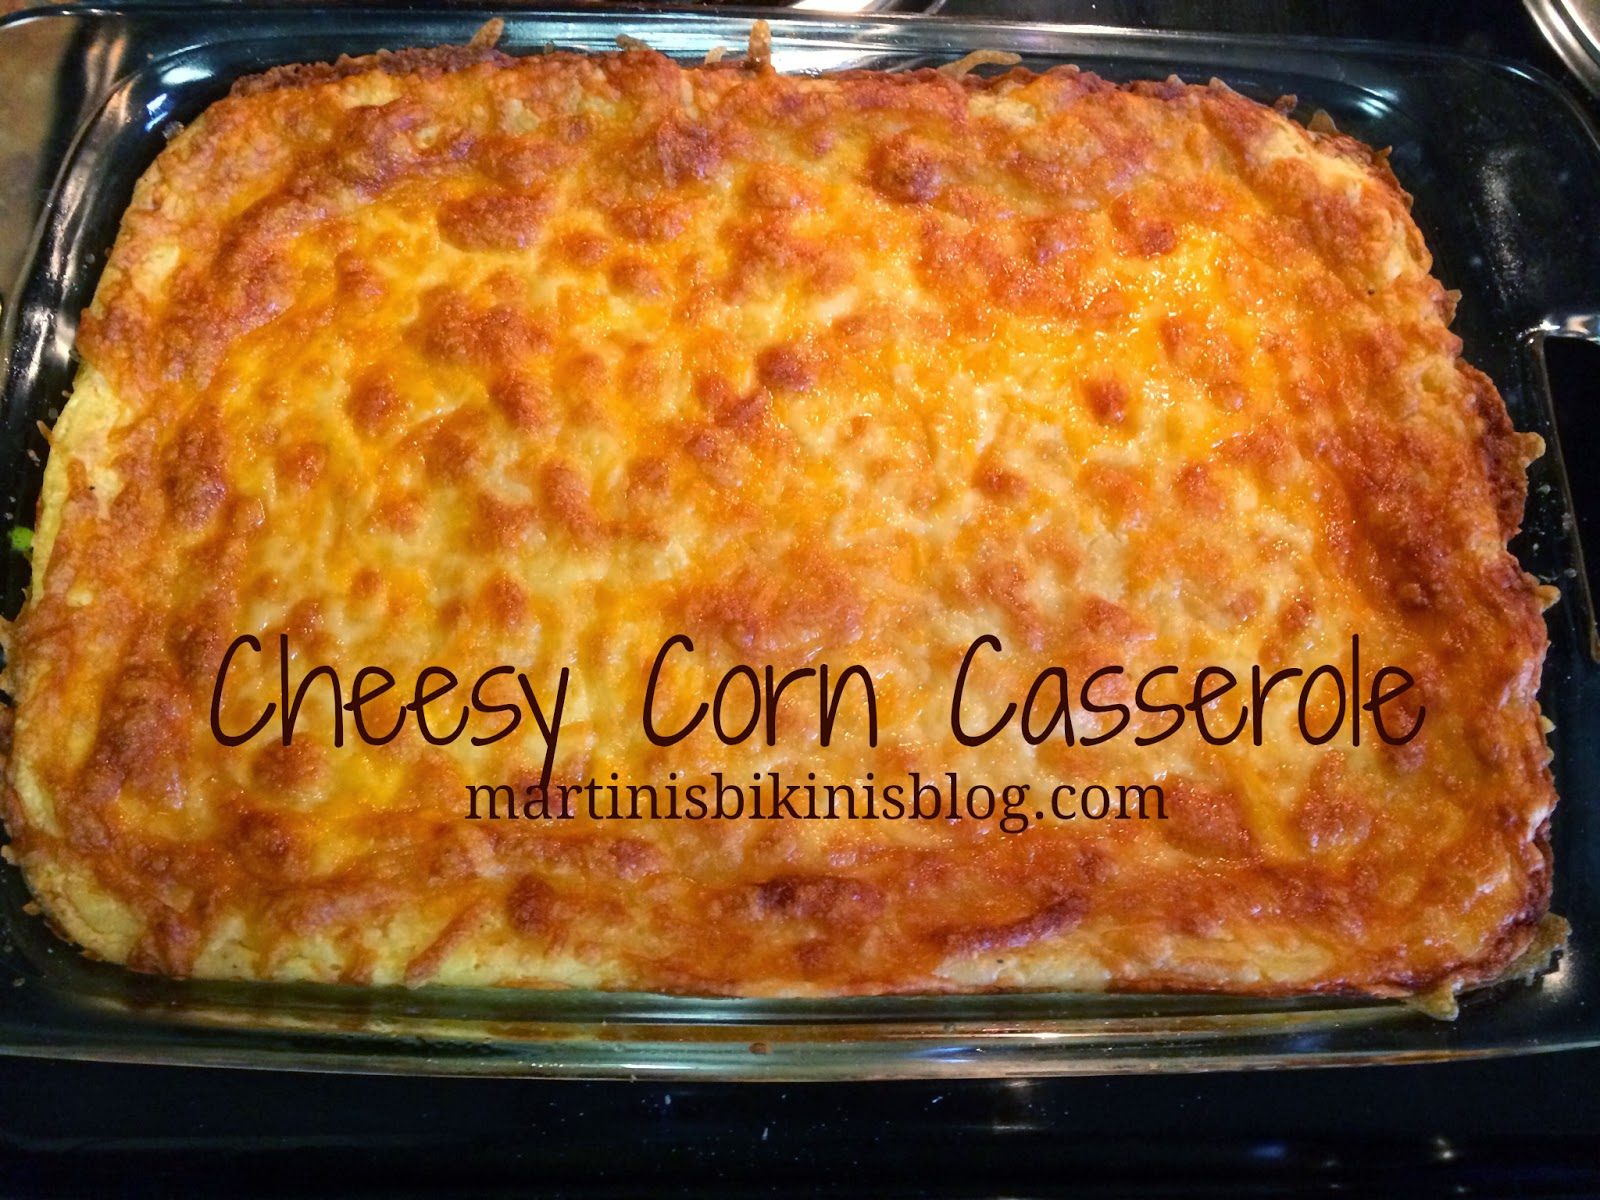 got this delicious recipe for Cheesy Corn Casserole from here thanks ...